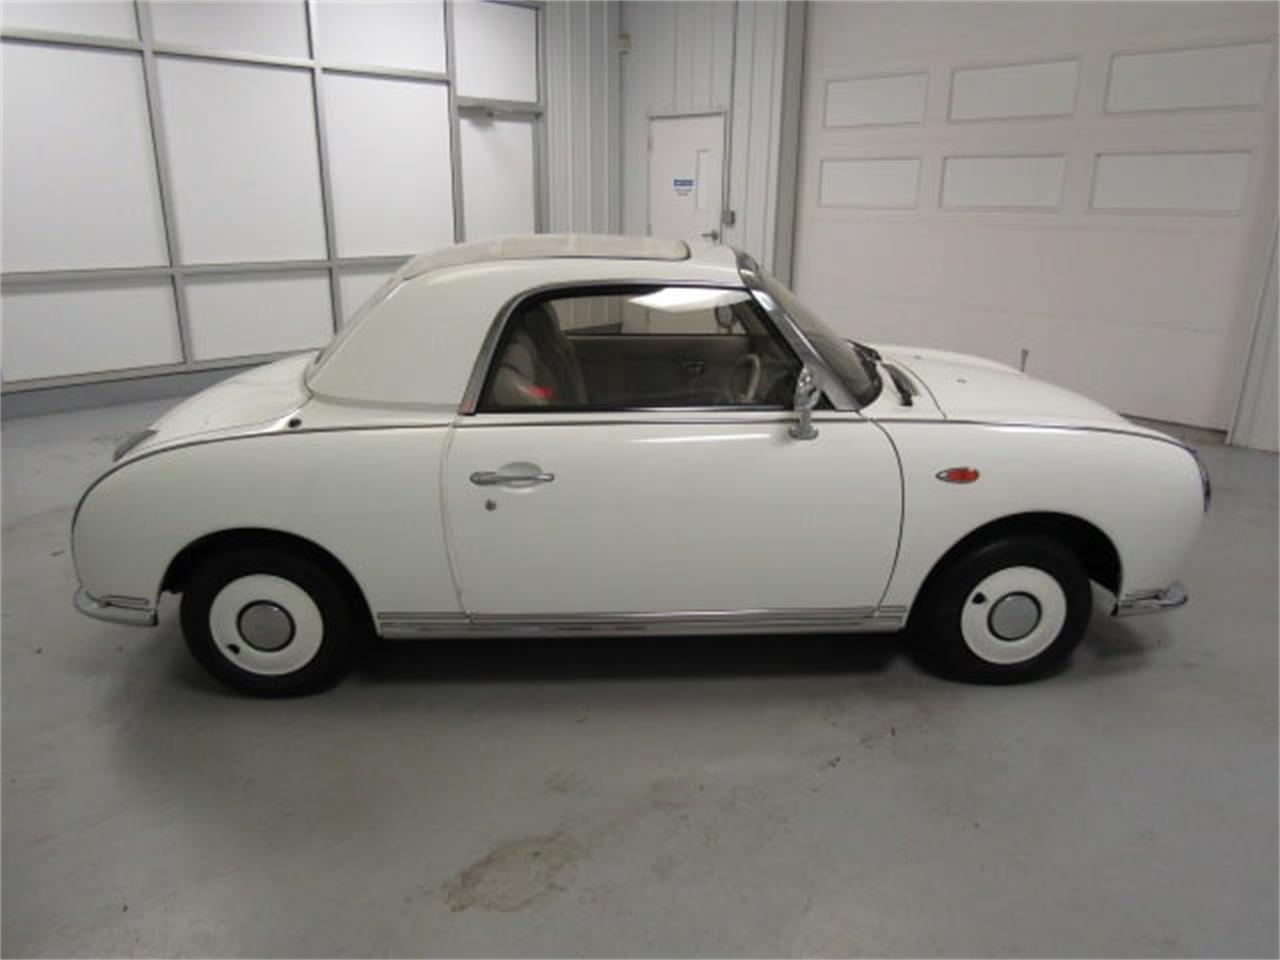 Large Picture of '91 Nissan Figaro located in Virginia - $8,900.00 - K985